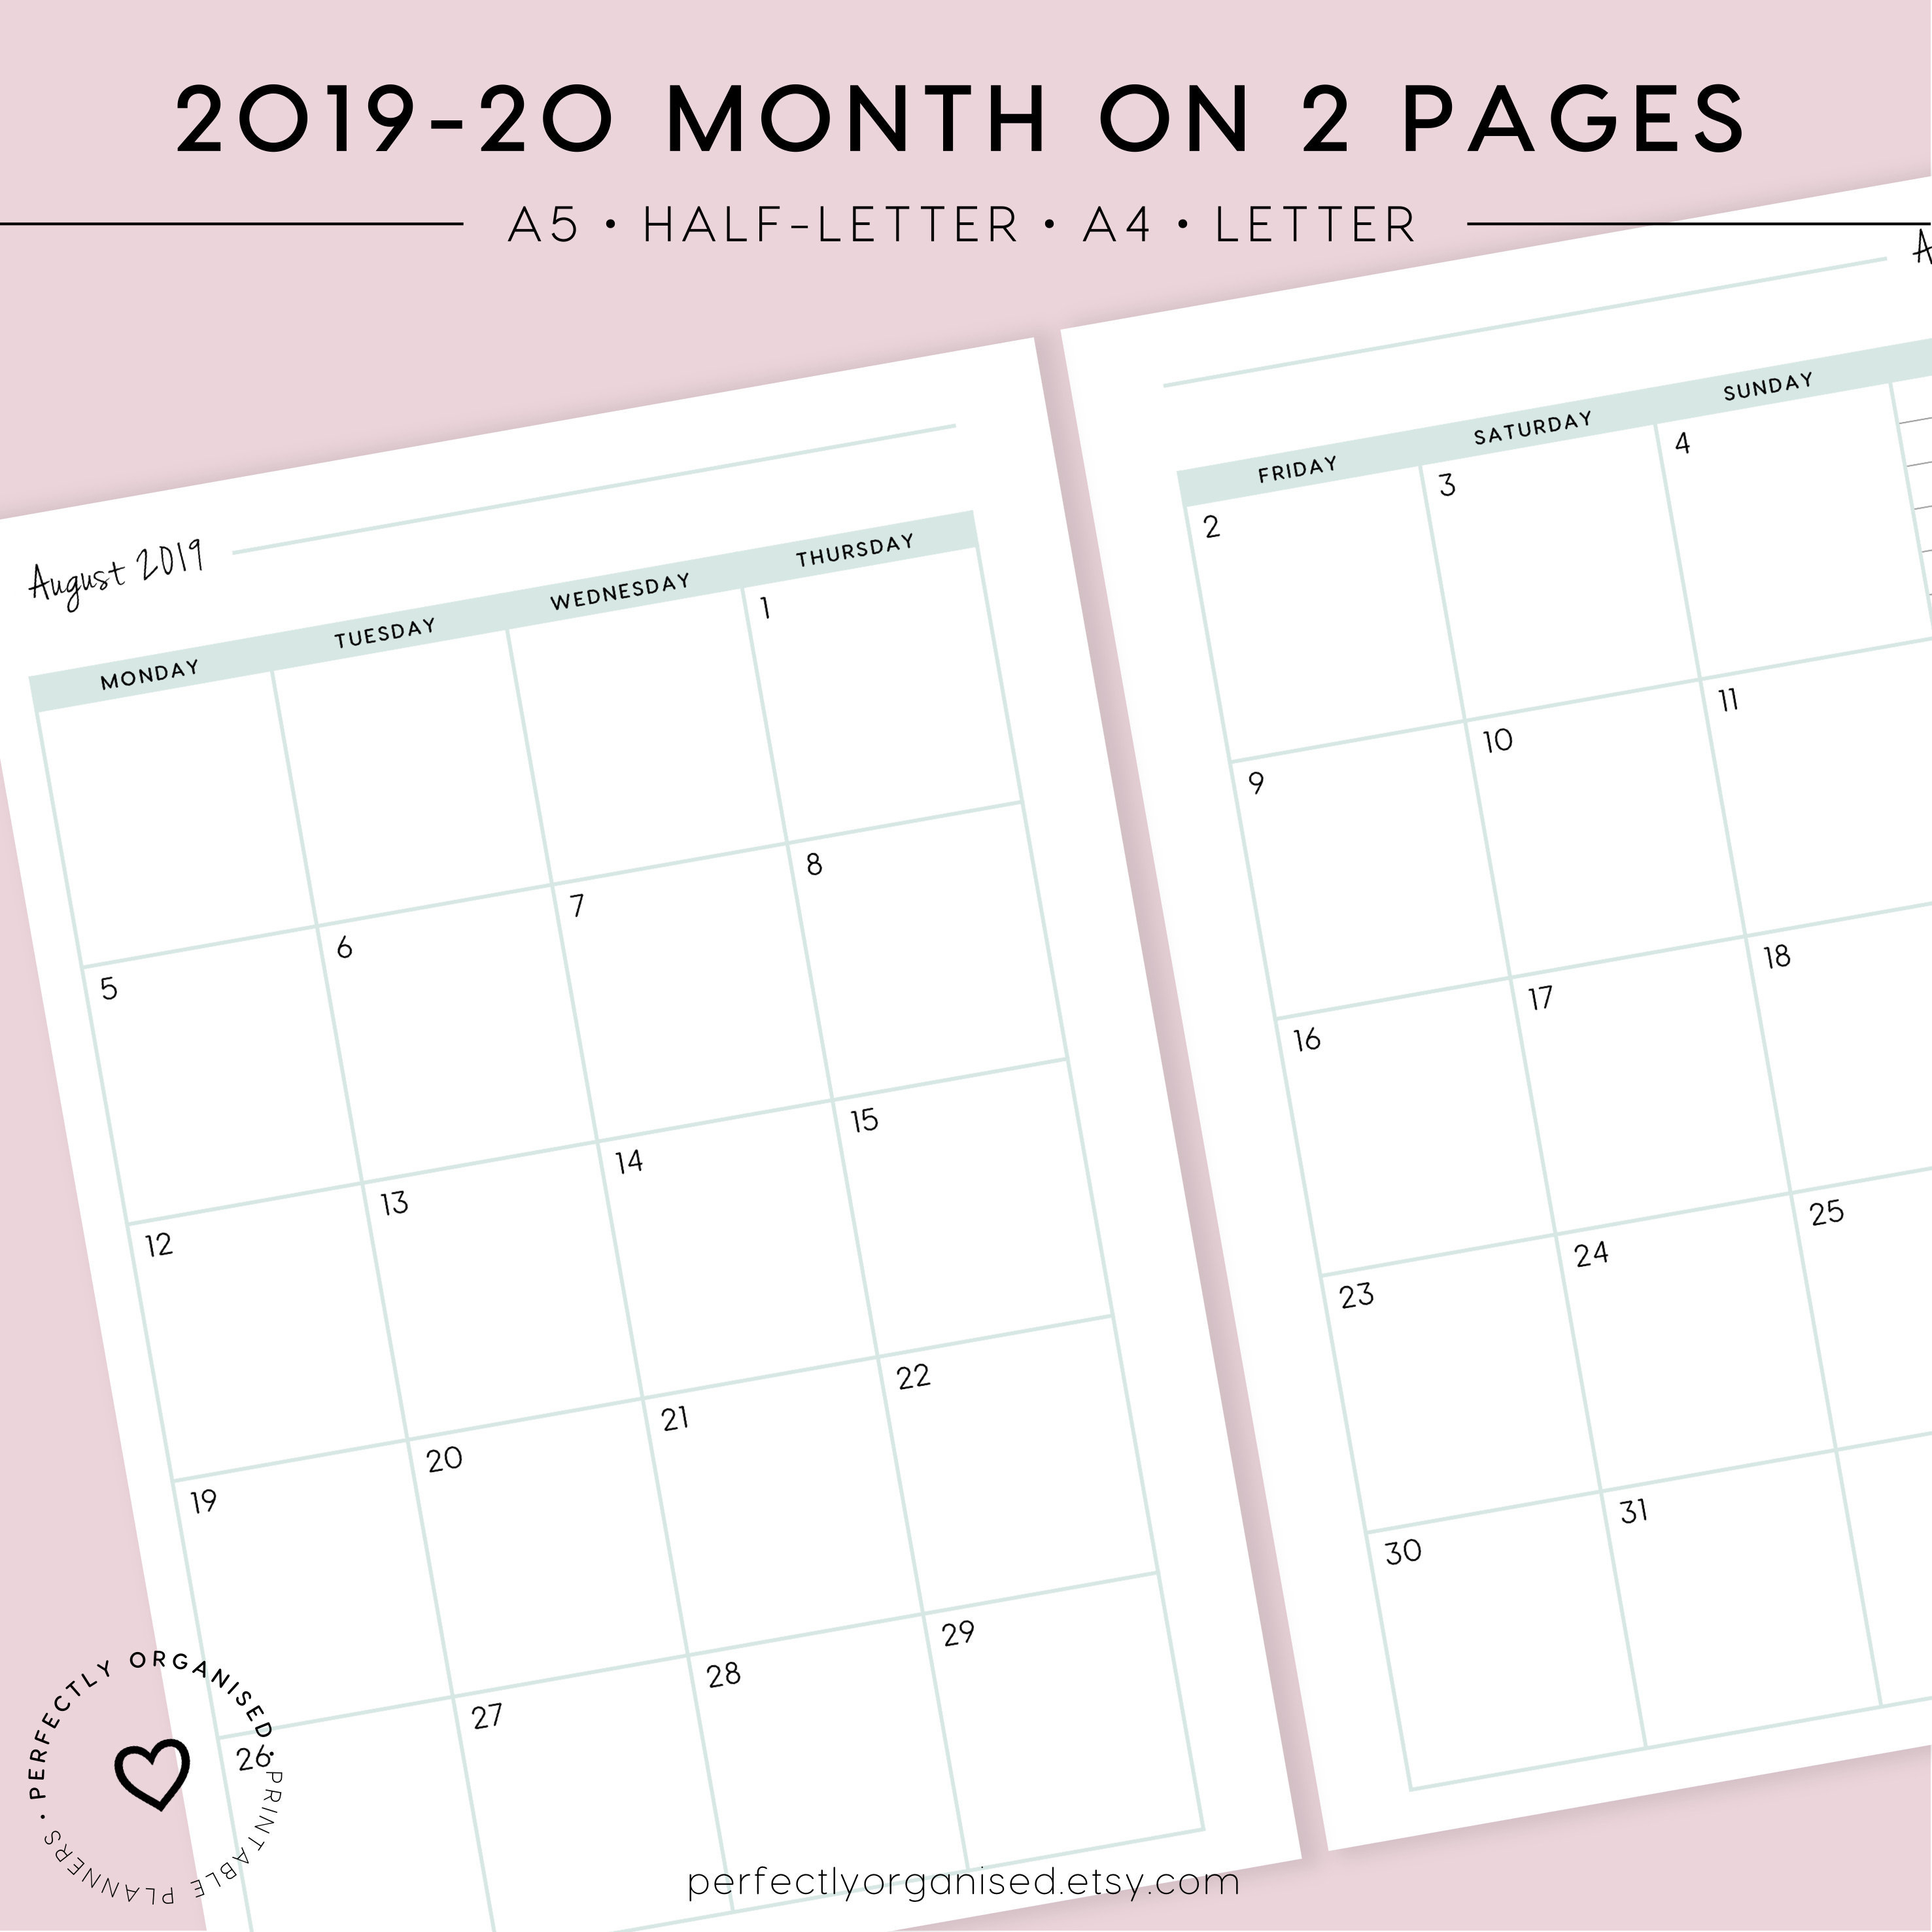 2019-2020 Month On 2 Pages Printable | Monthly Planner, Monthly Inserts,  Monthly Calendar, Pastel, A5, Half-Letter, A4, Letter intended for Monthly Printable Calendars 2020 Half Page